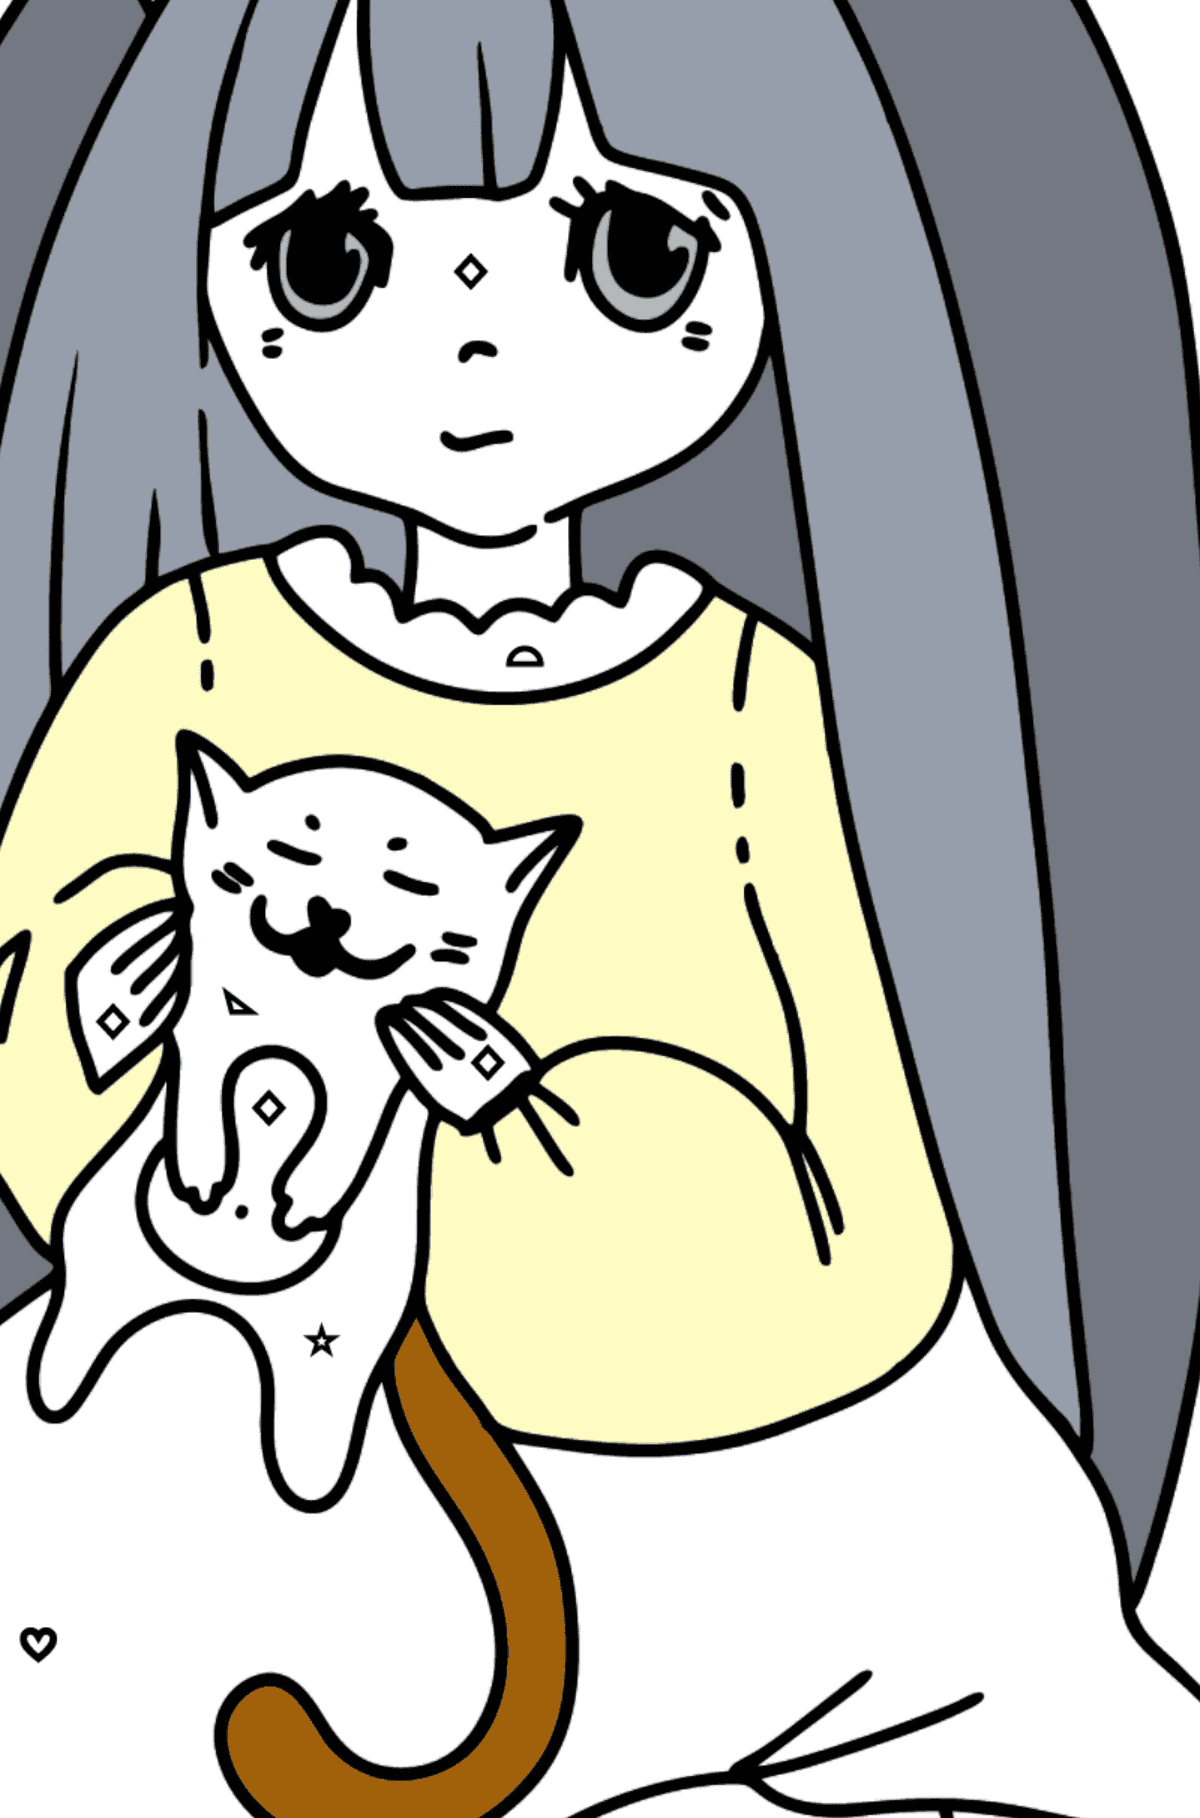 Anime Girl Playing with Kitten coloring page - Coloring by Geometric Shapes for Kids